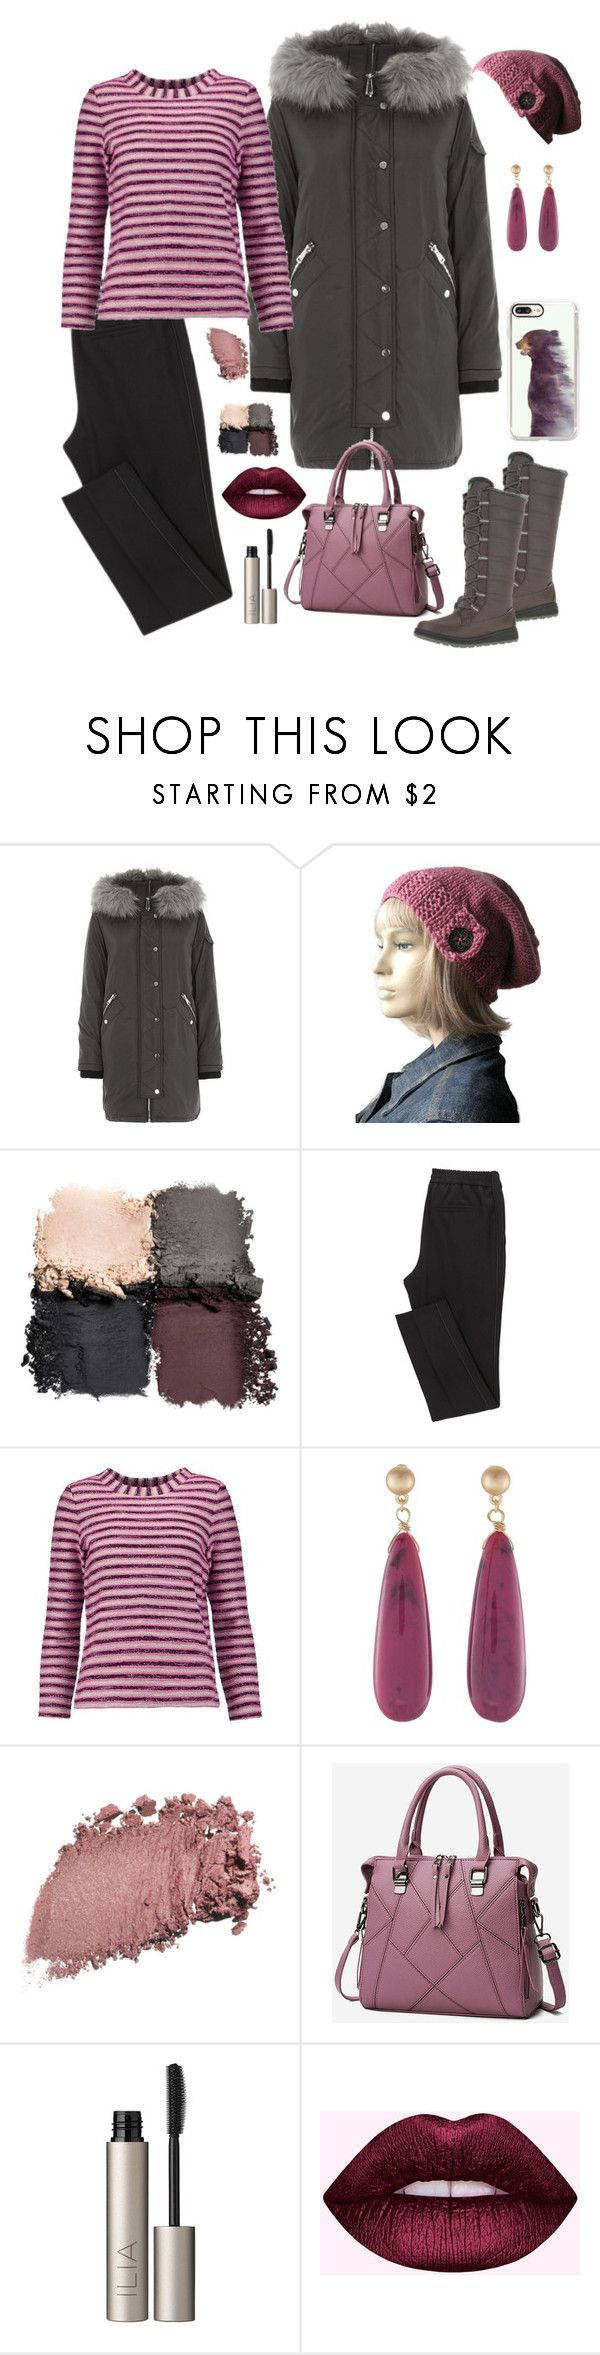 """""""Grey Parka #2"""" by knitsbynat ❤ liked on Polyvore featuring River Island, Tory Burch, WithChic, Ilia and Casetify"""